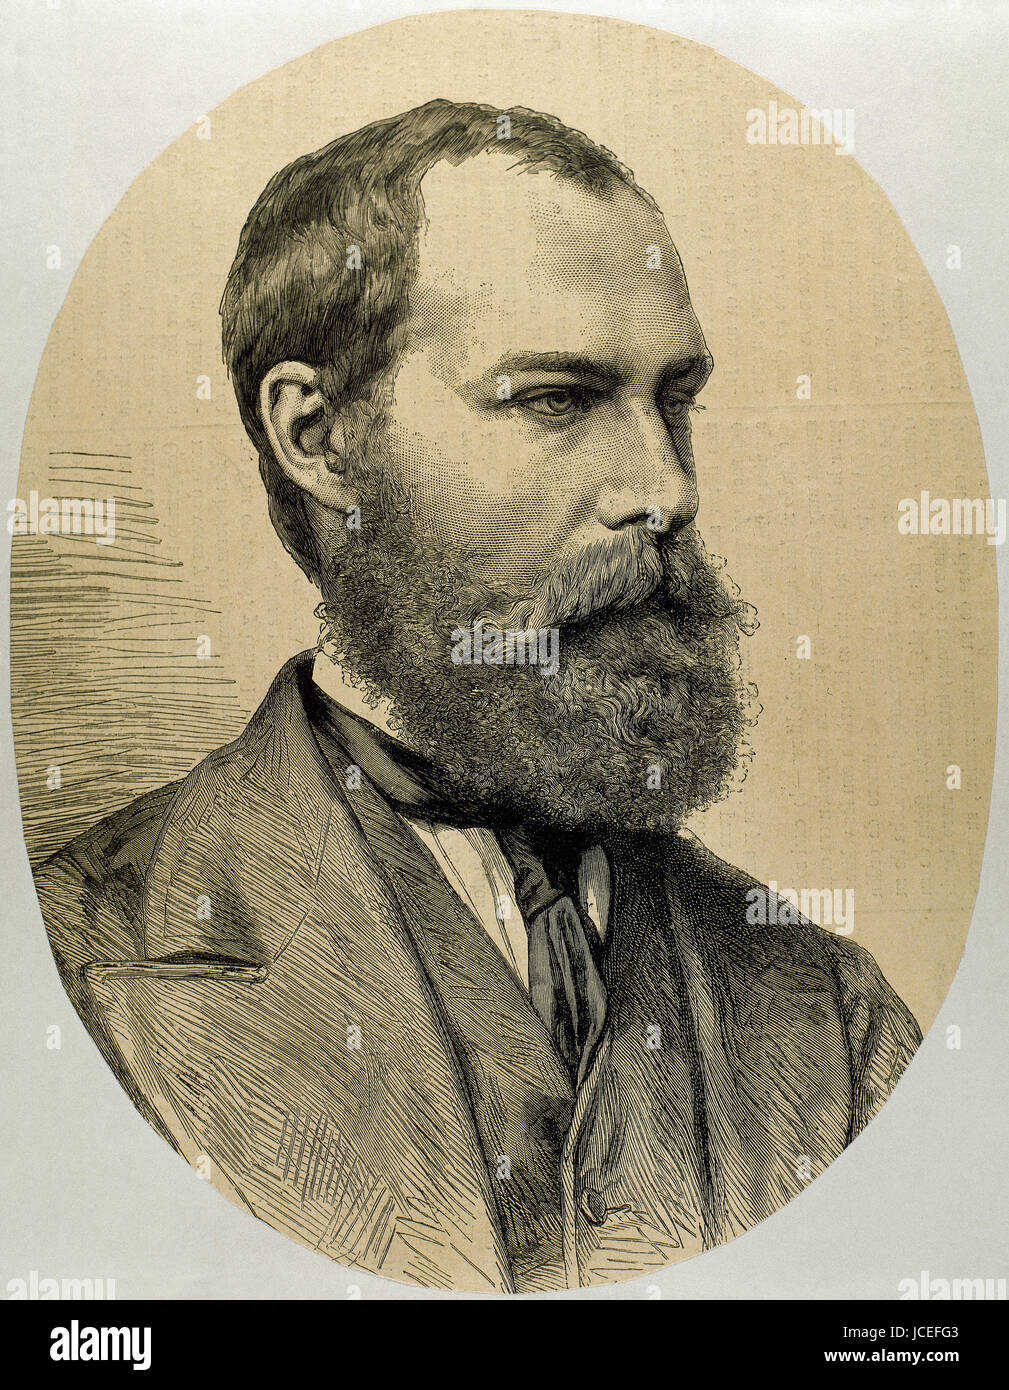 Prince Philippe of Orleans, Count of Paris (1838-1894). Orleanist pretender to the French throne from 1848 until - Stock Image